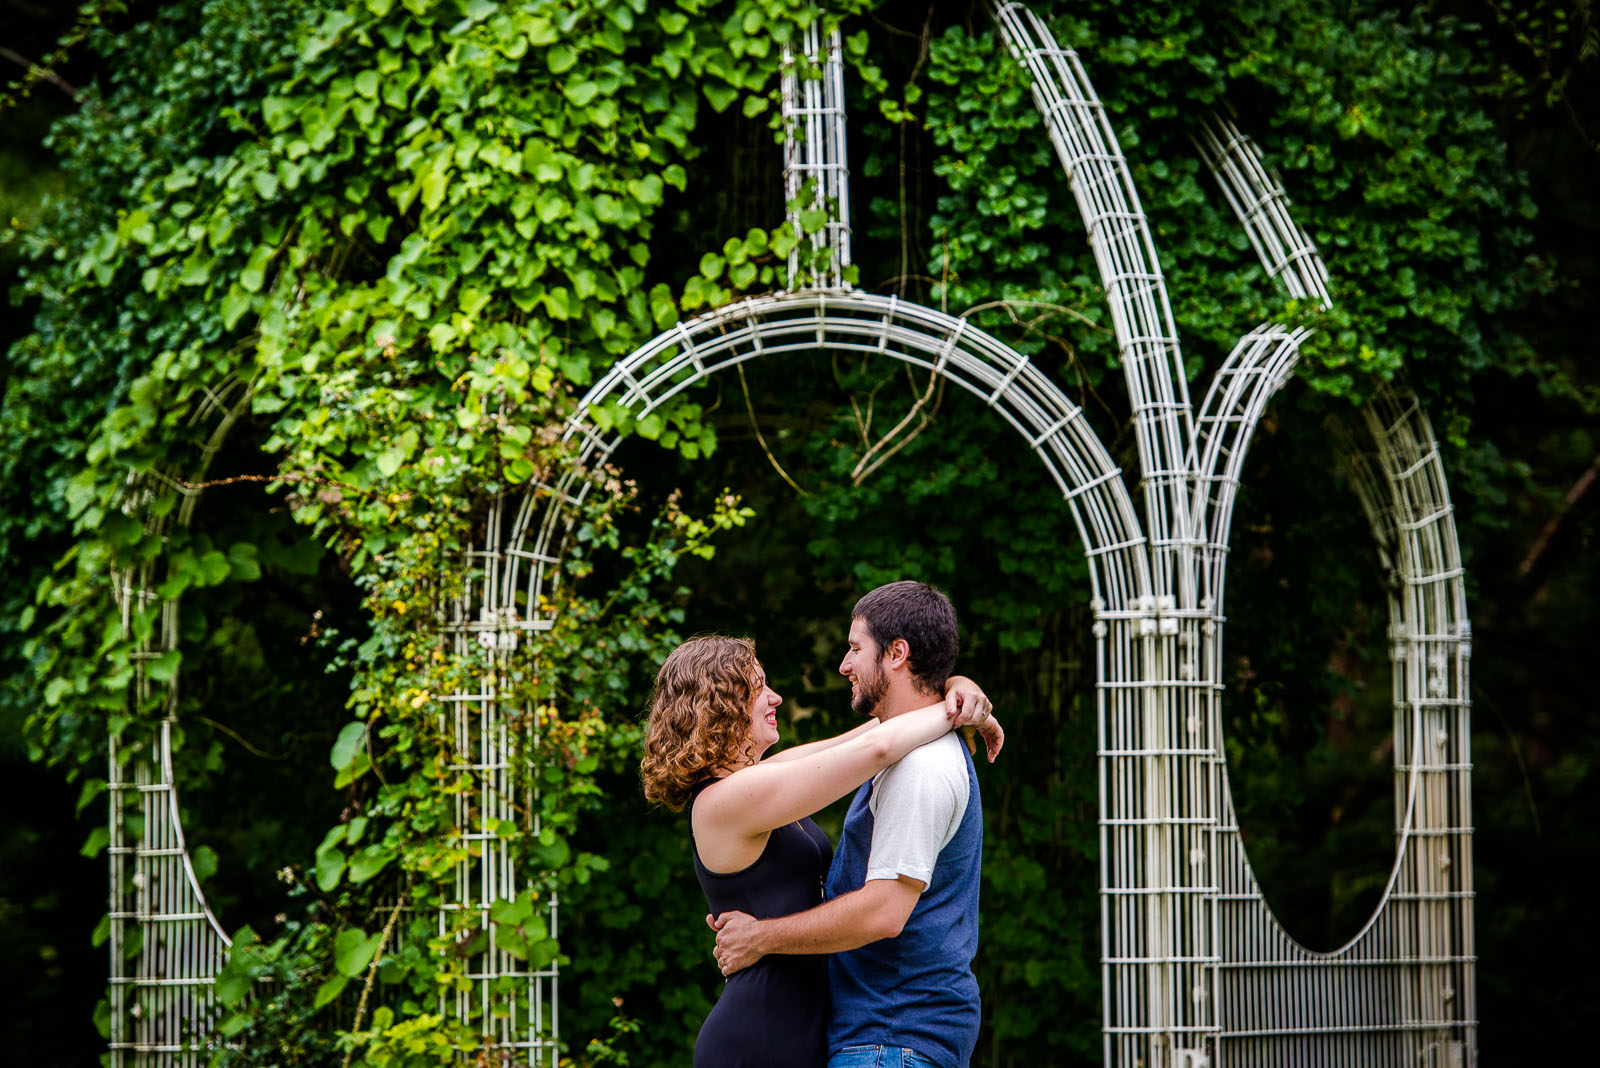 Eric_and_Christy_Photography_Blog_Engagement_Andrea_Clint-12